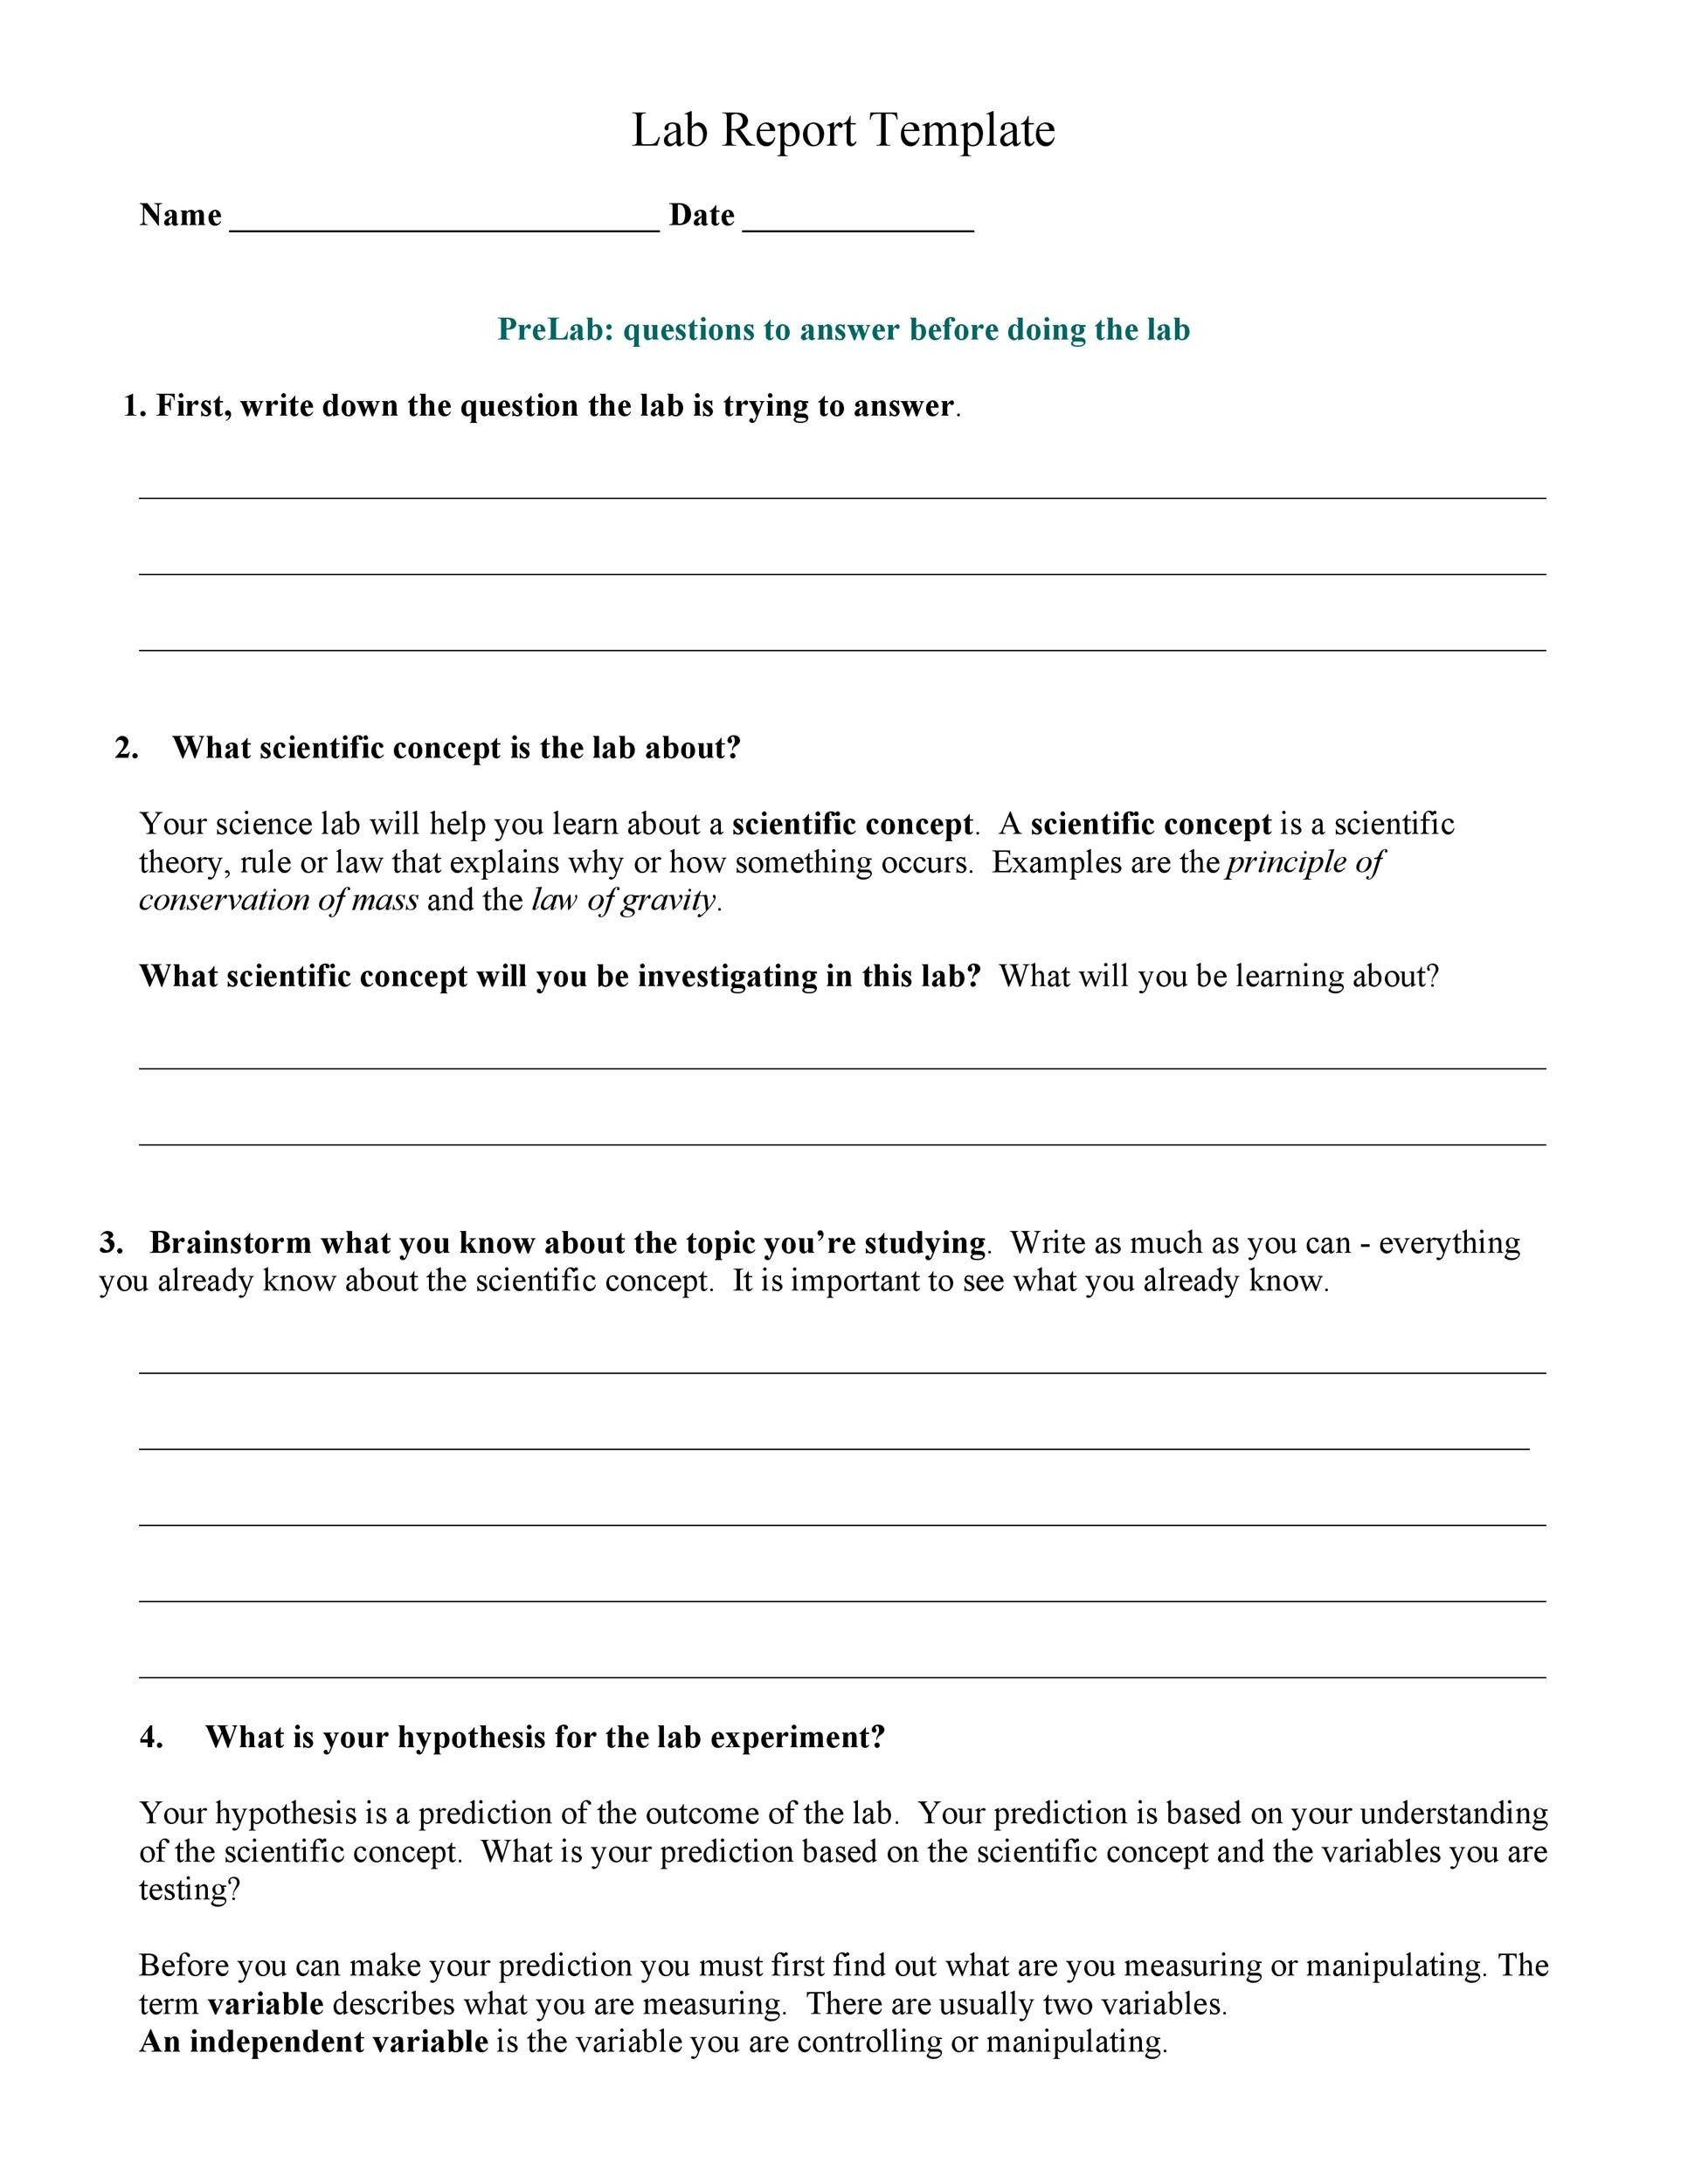 Free lab report template 03